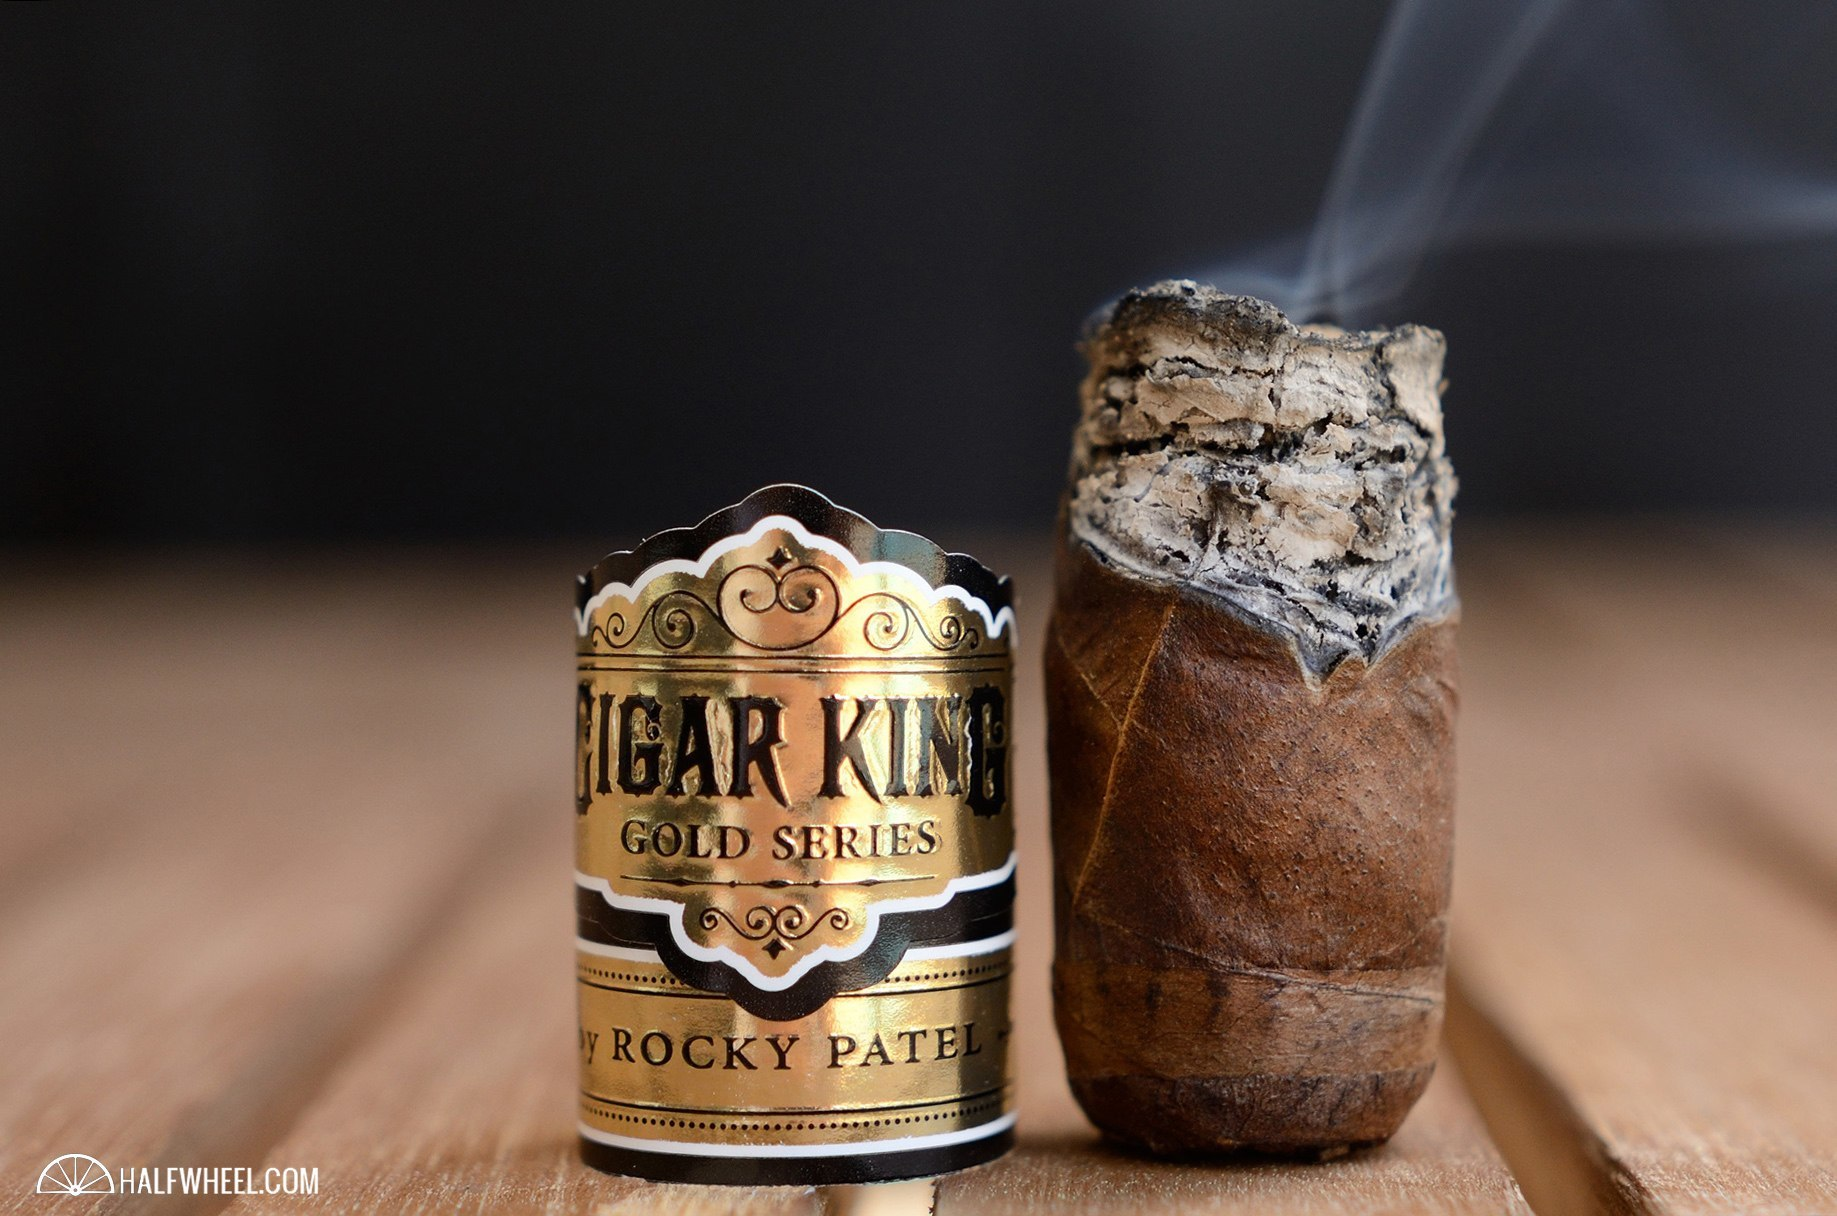 Cigar King Gold Series II by Rocky Patel 4